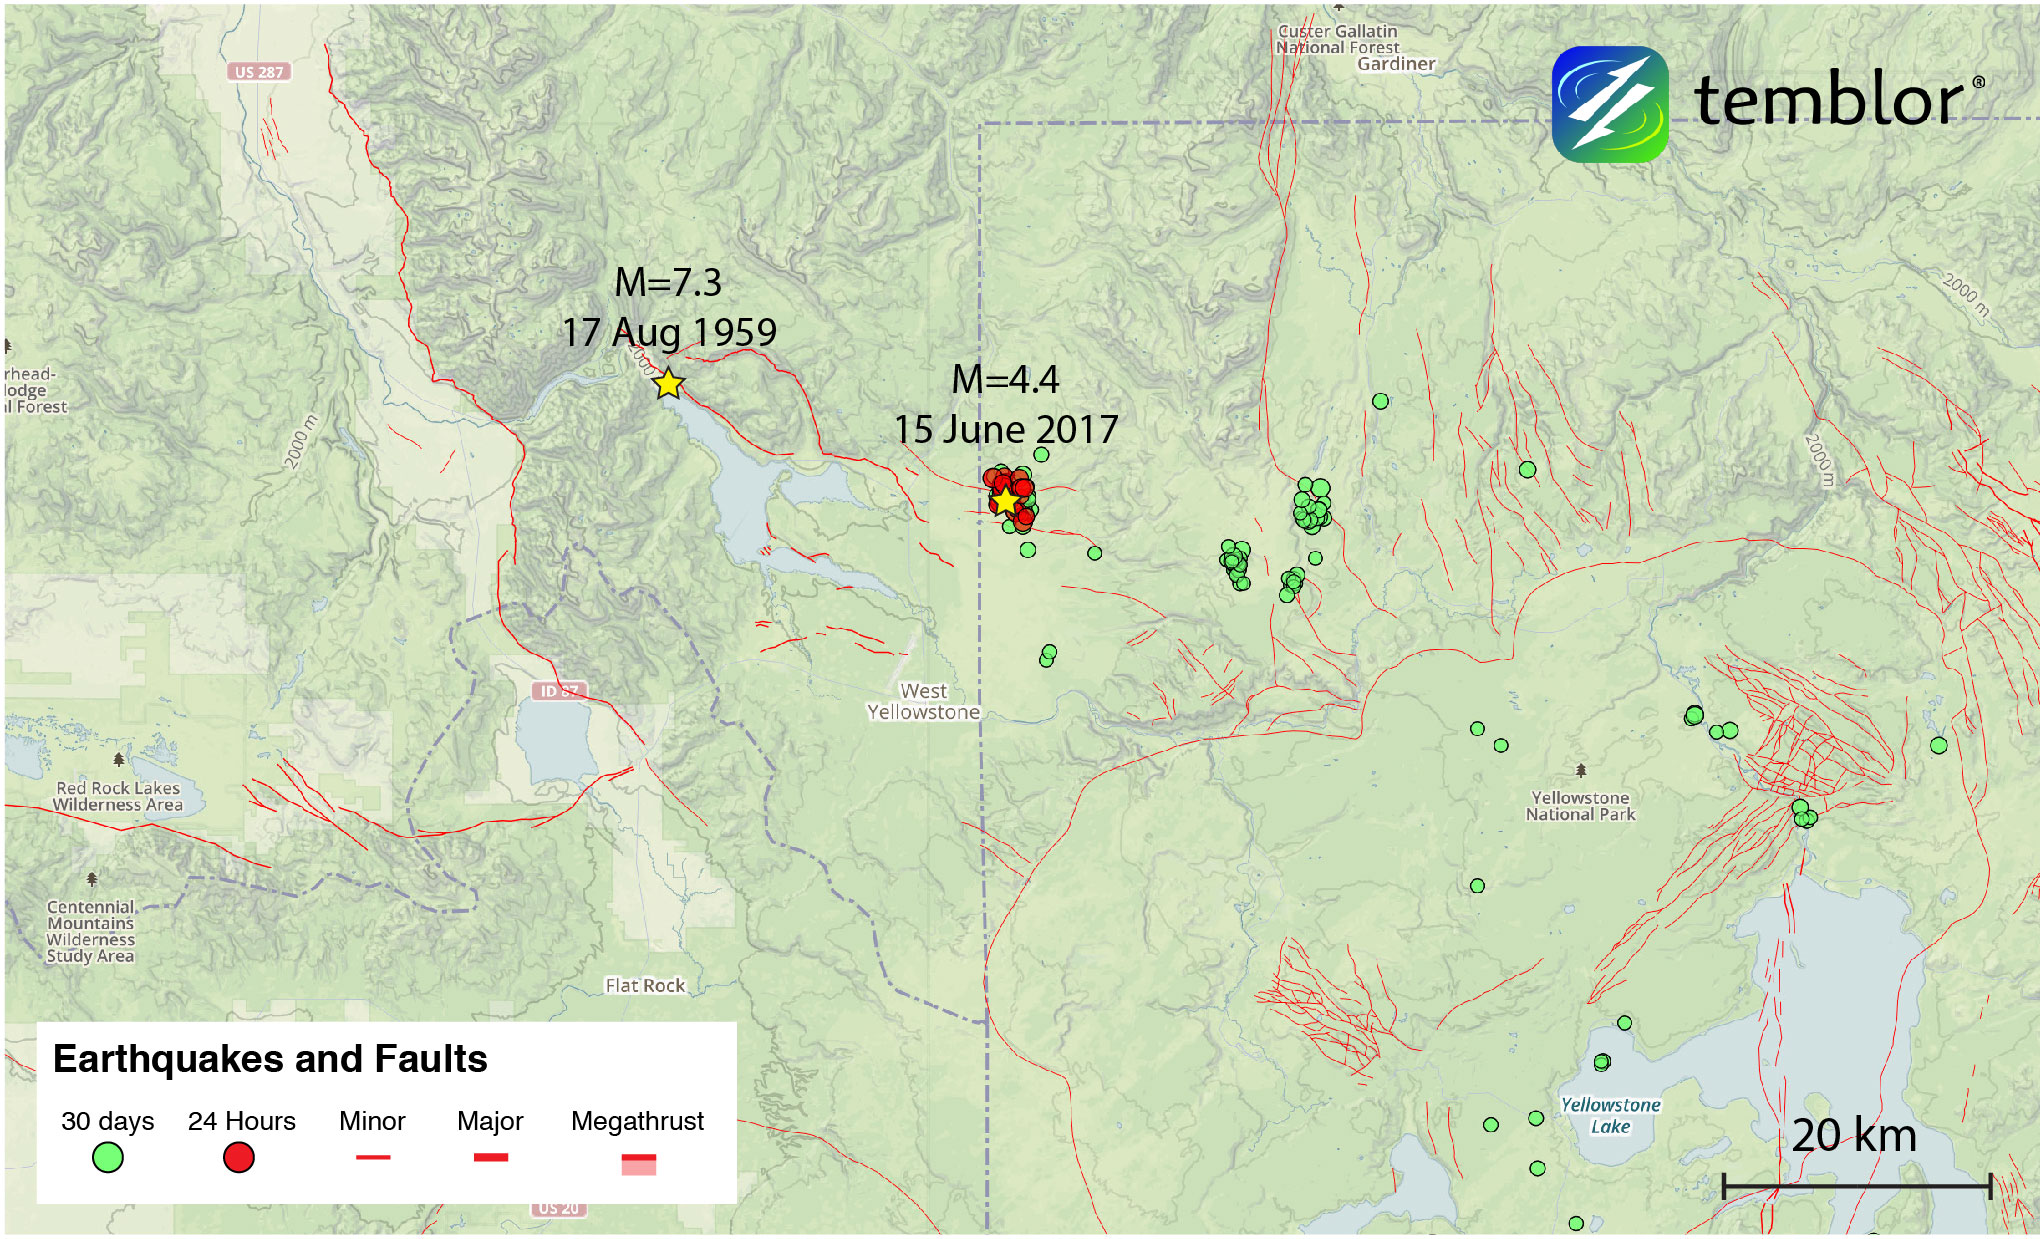 usgs earthquake map yellowstone From Temblor M 4 4 Earthquake Highlights In Progress Seismic usgs earthquake map yellowstone